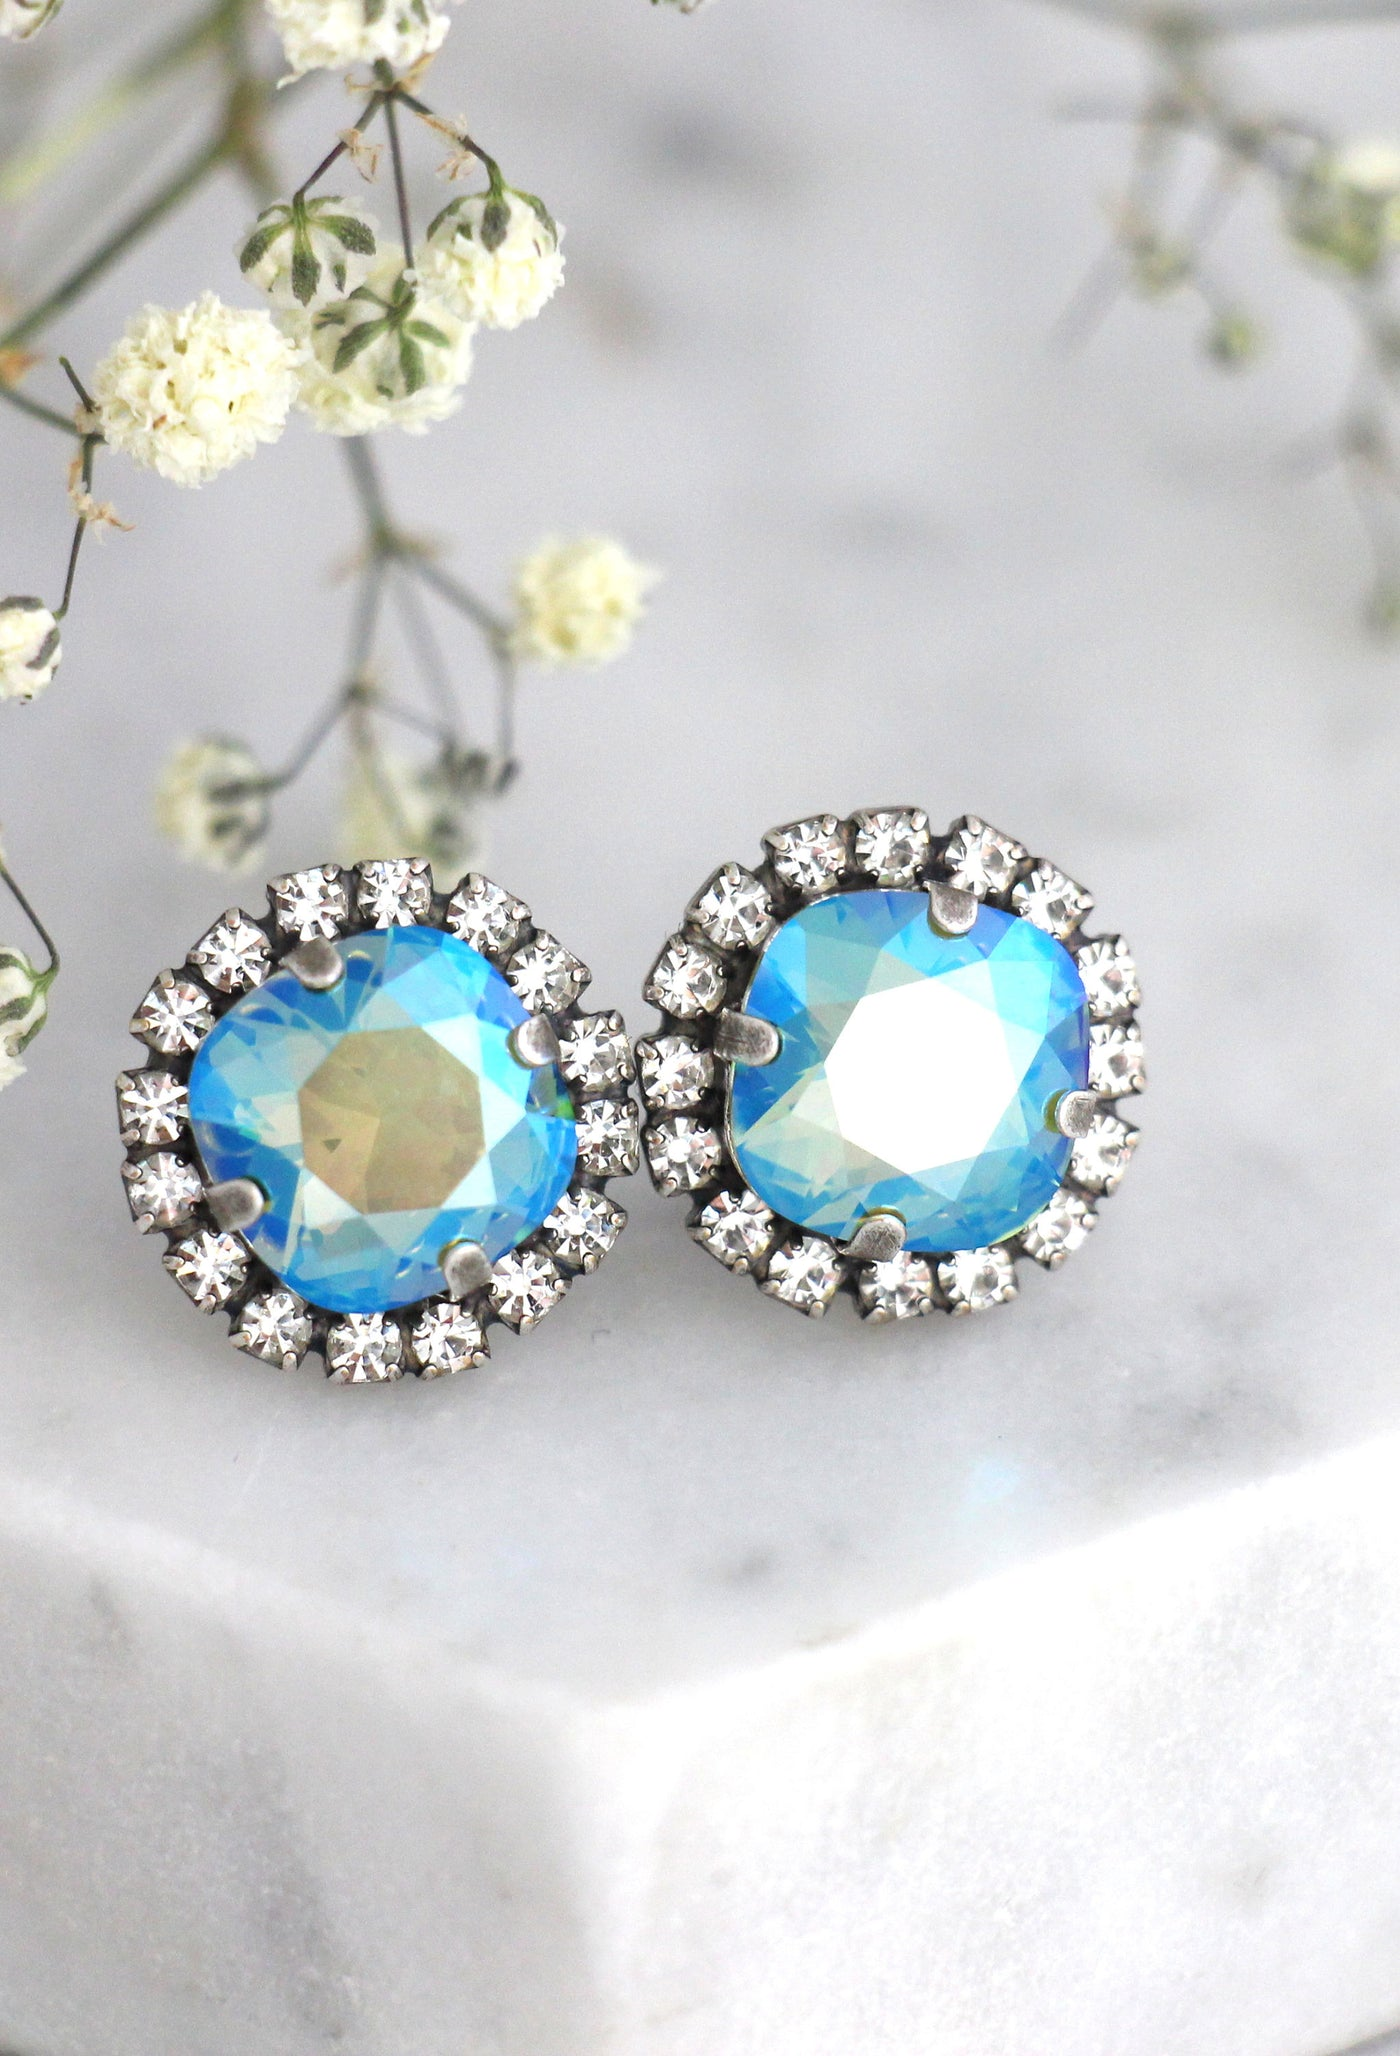 Cloe Icy Blue Crystal Swarovski Bridal Stud Earrings